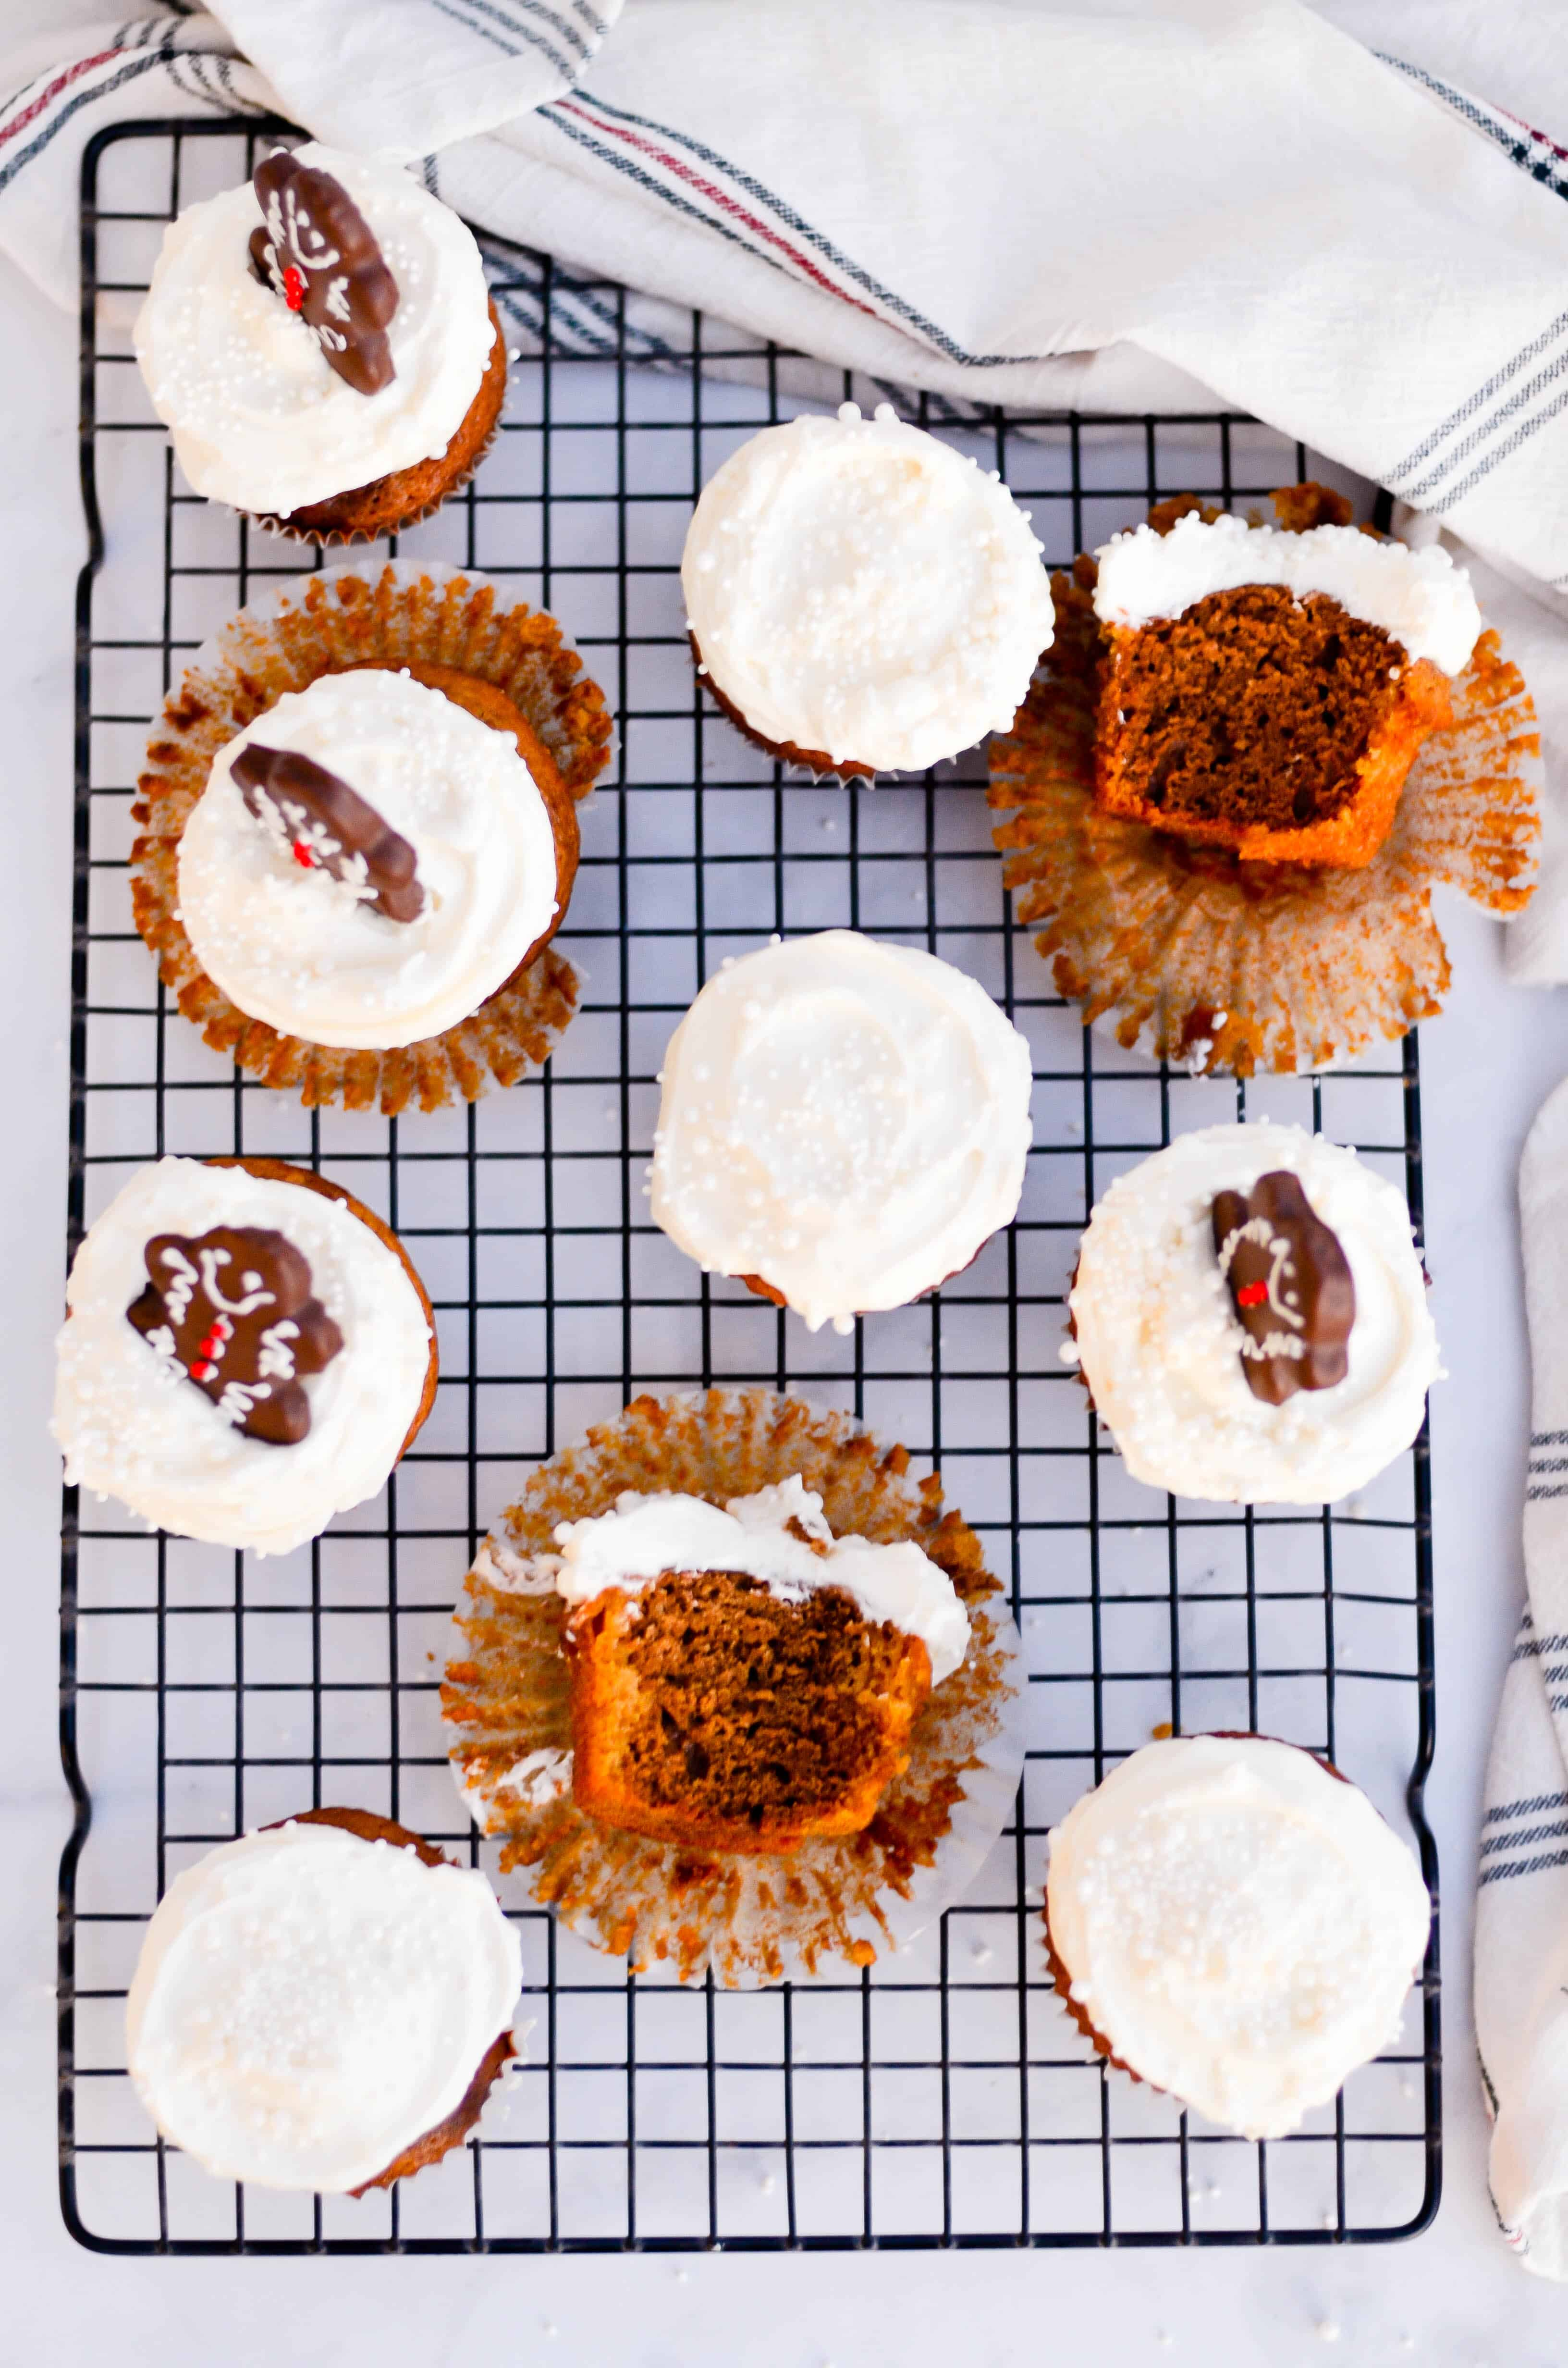 Swirled layers of soft pumpkin and gingerbread cakes are topped with a dreamy whipped cream frosting.